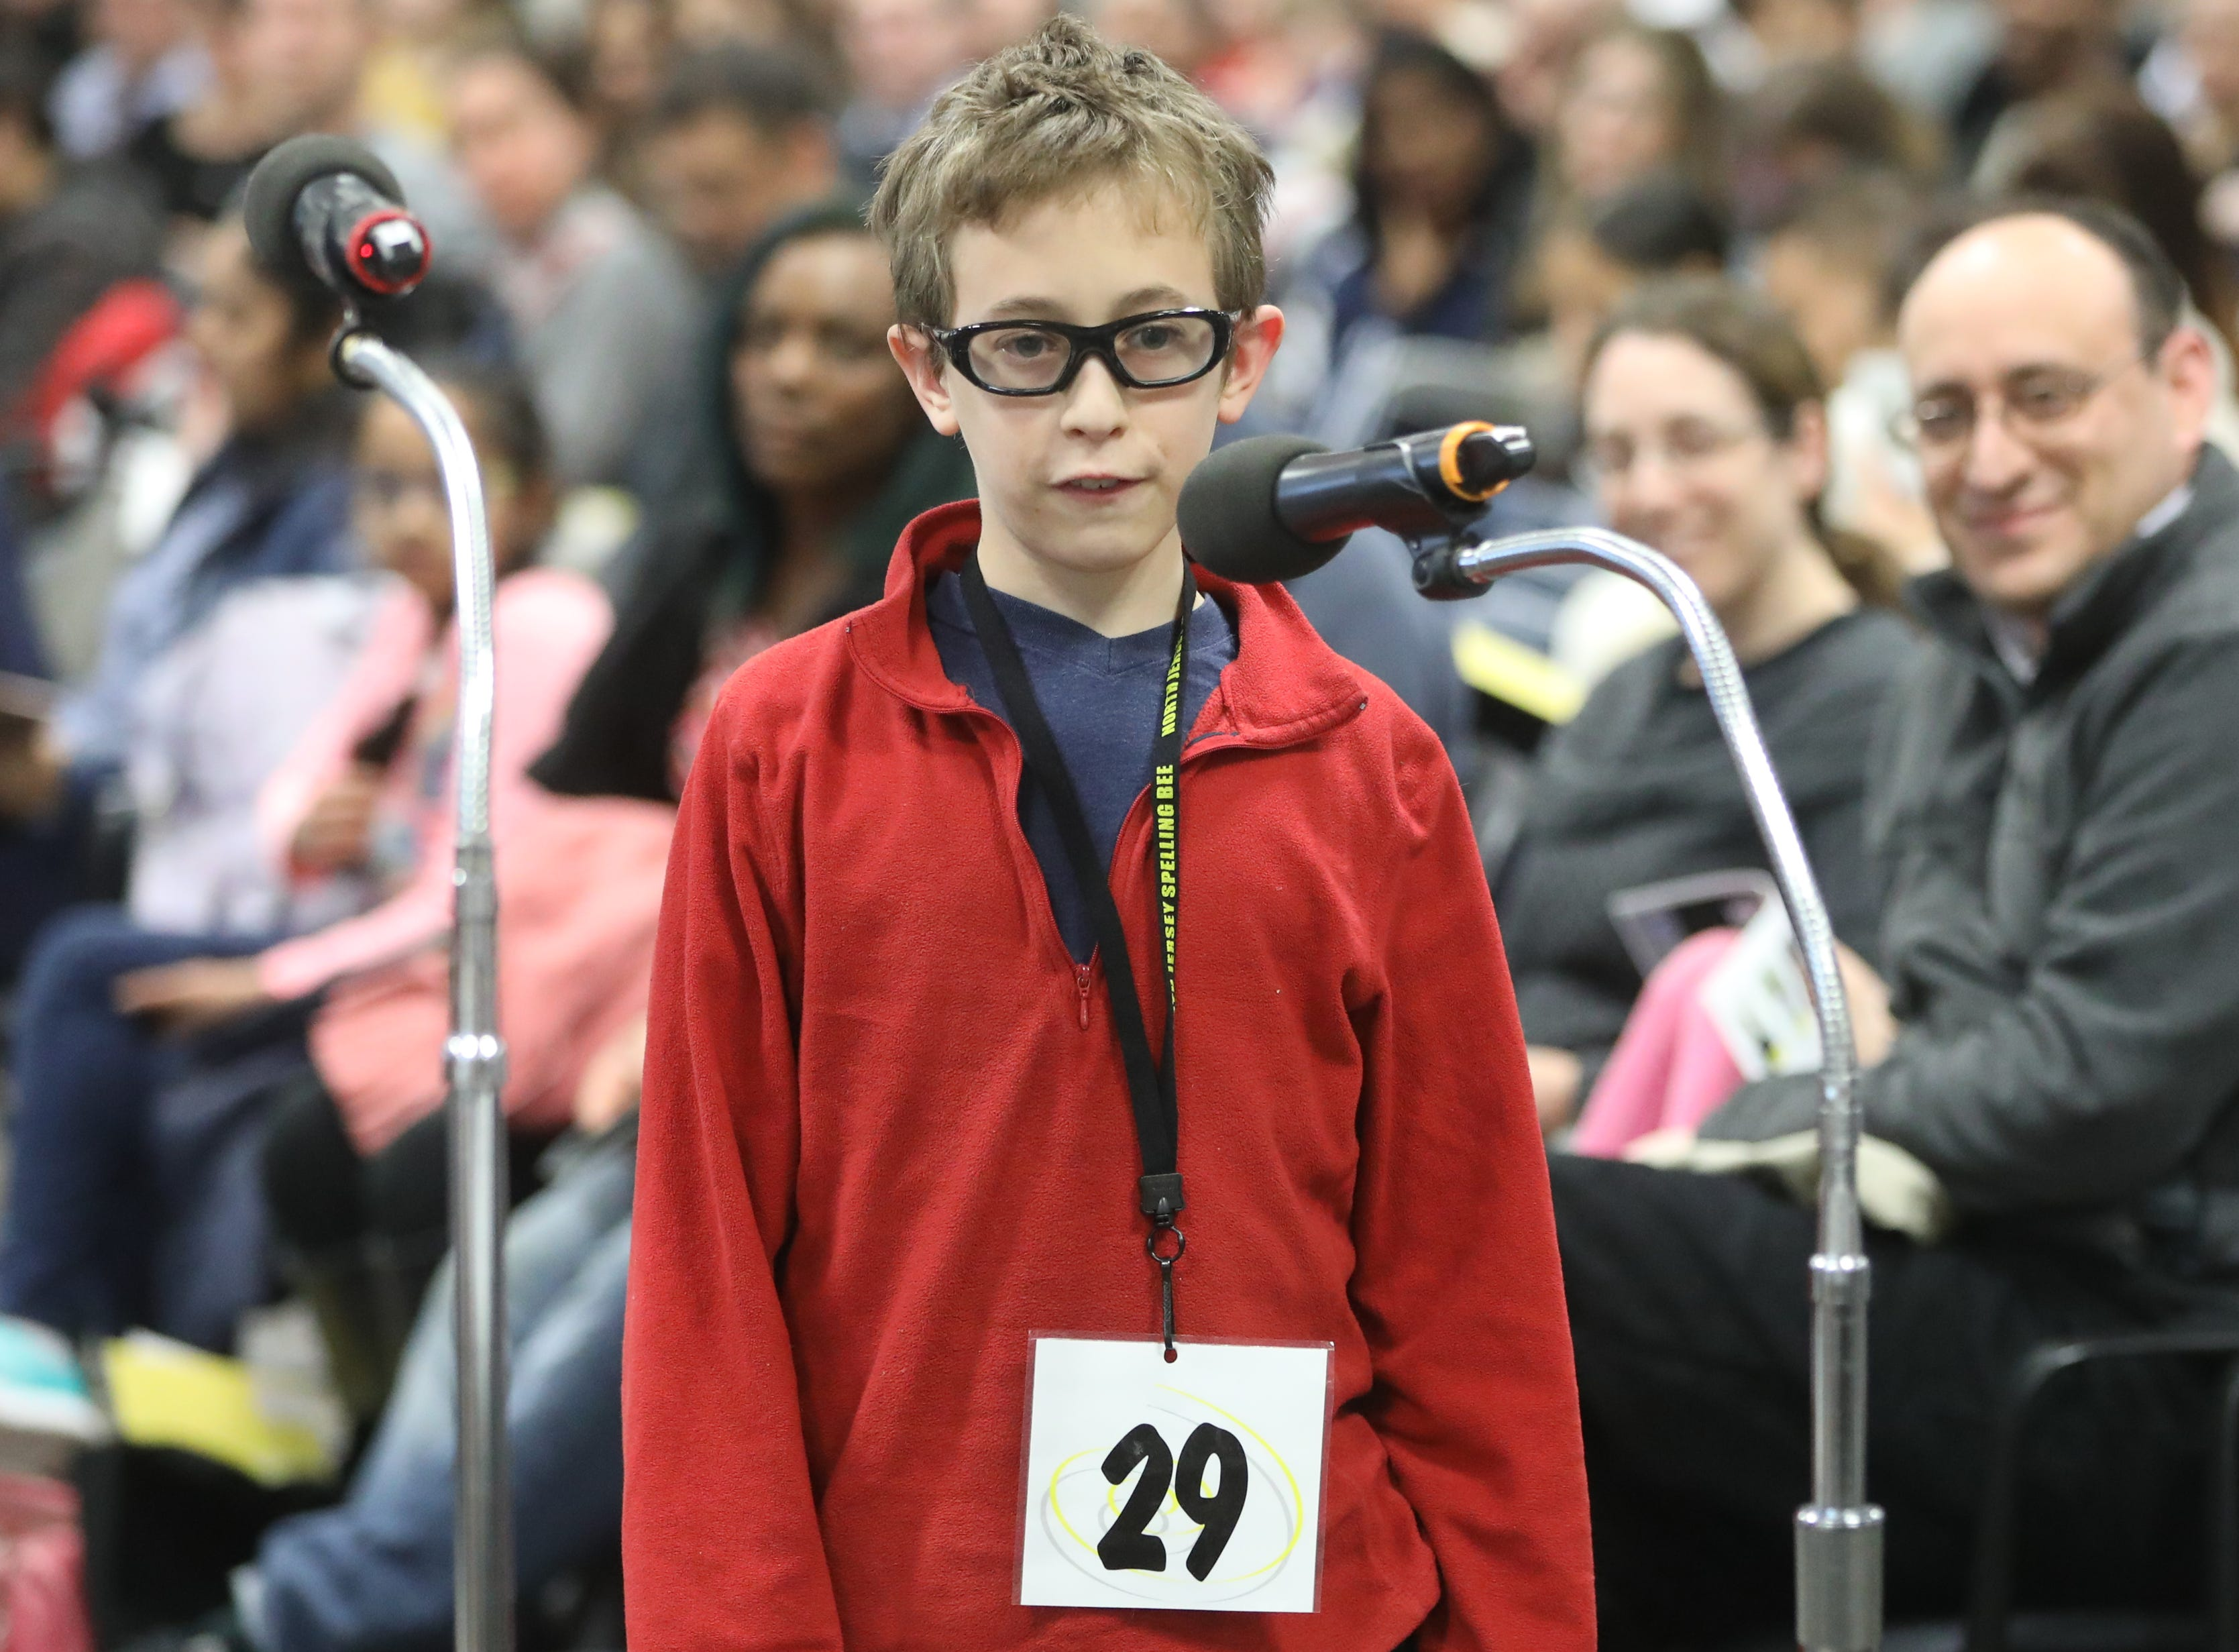 Yakir Schlosberg, of Oakland, competes in the first round of the 2019 North Jersey Spelling Bee, in Paramus. Thursday, March 14, 2019